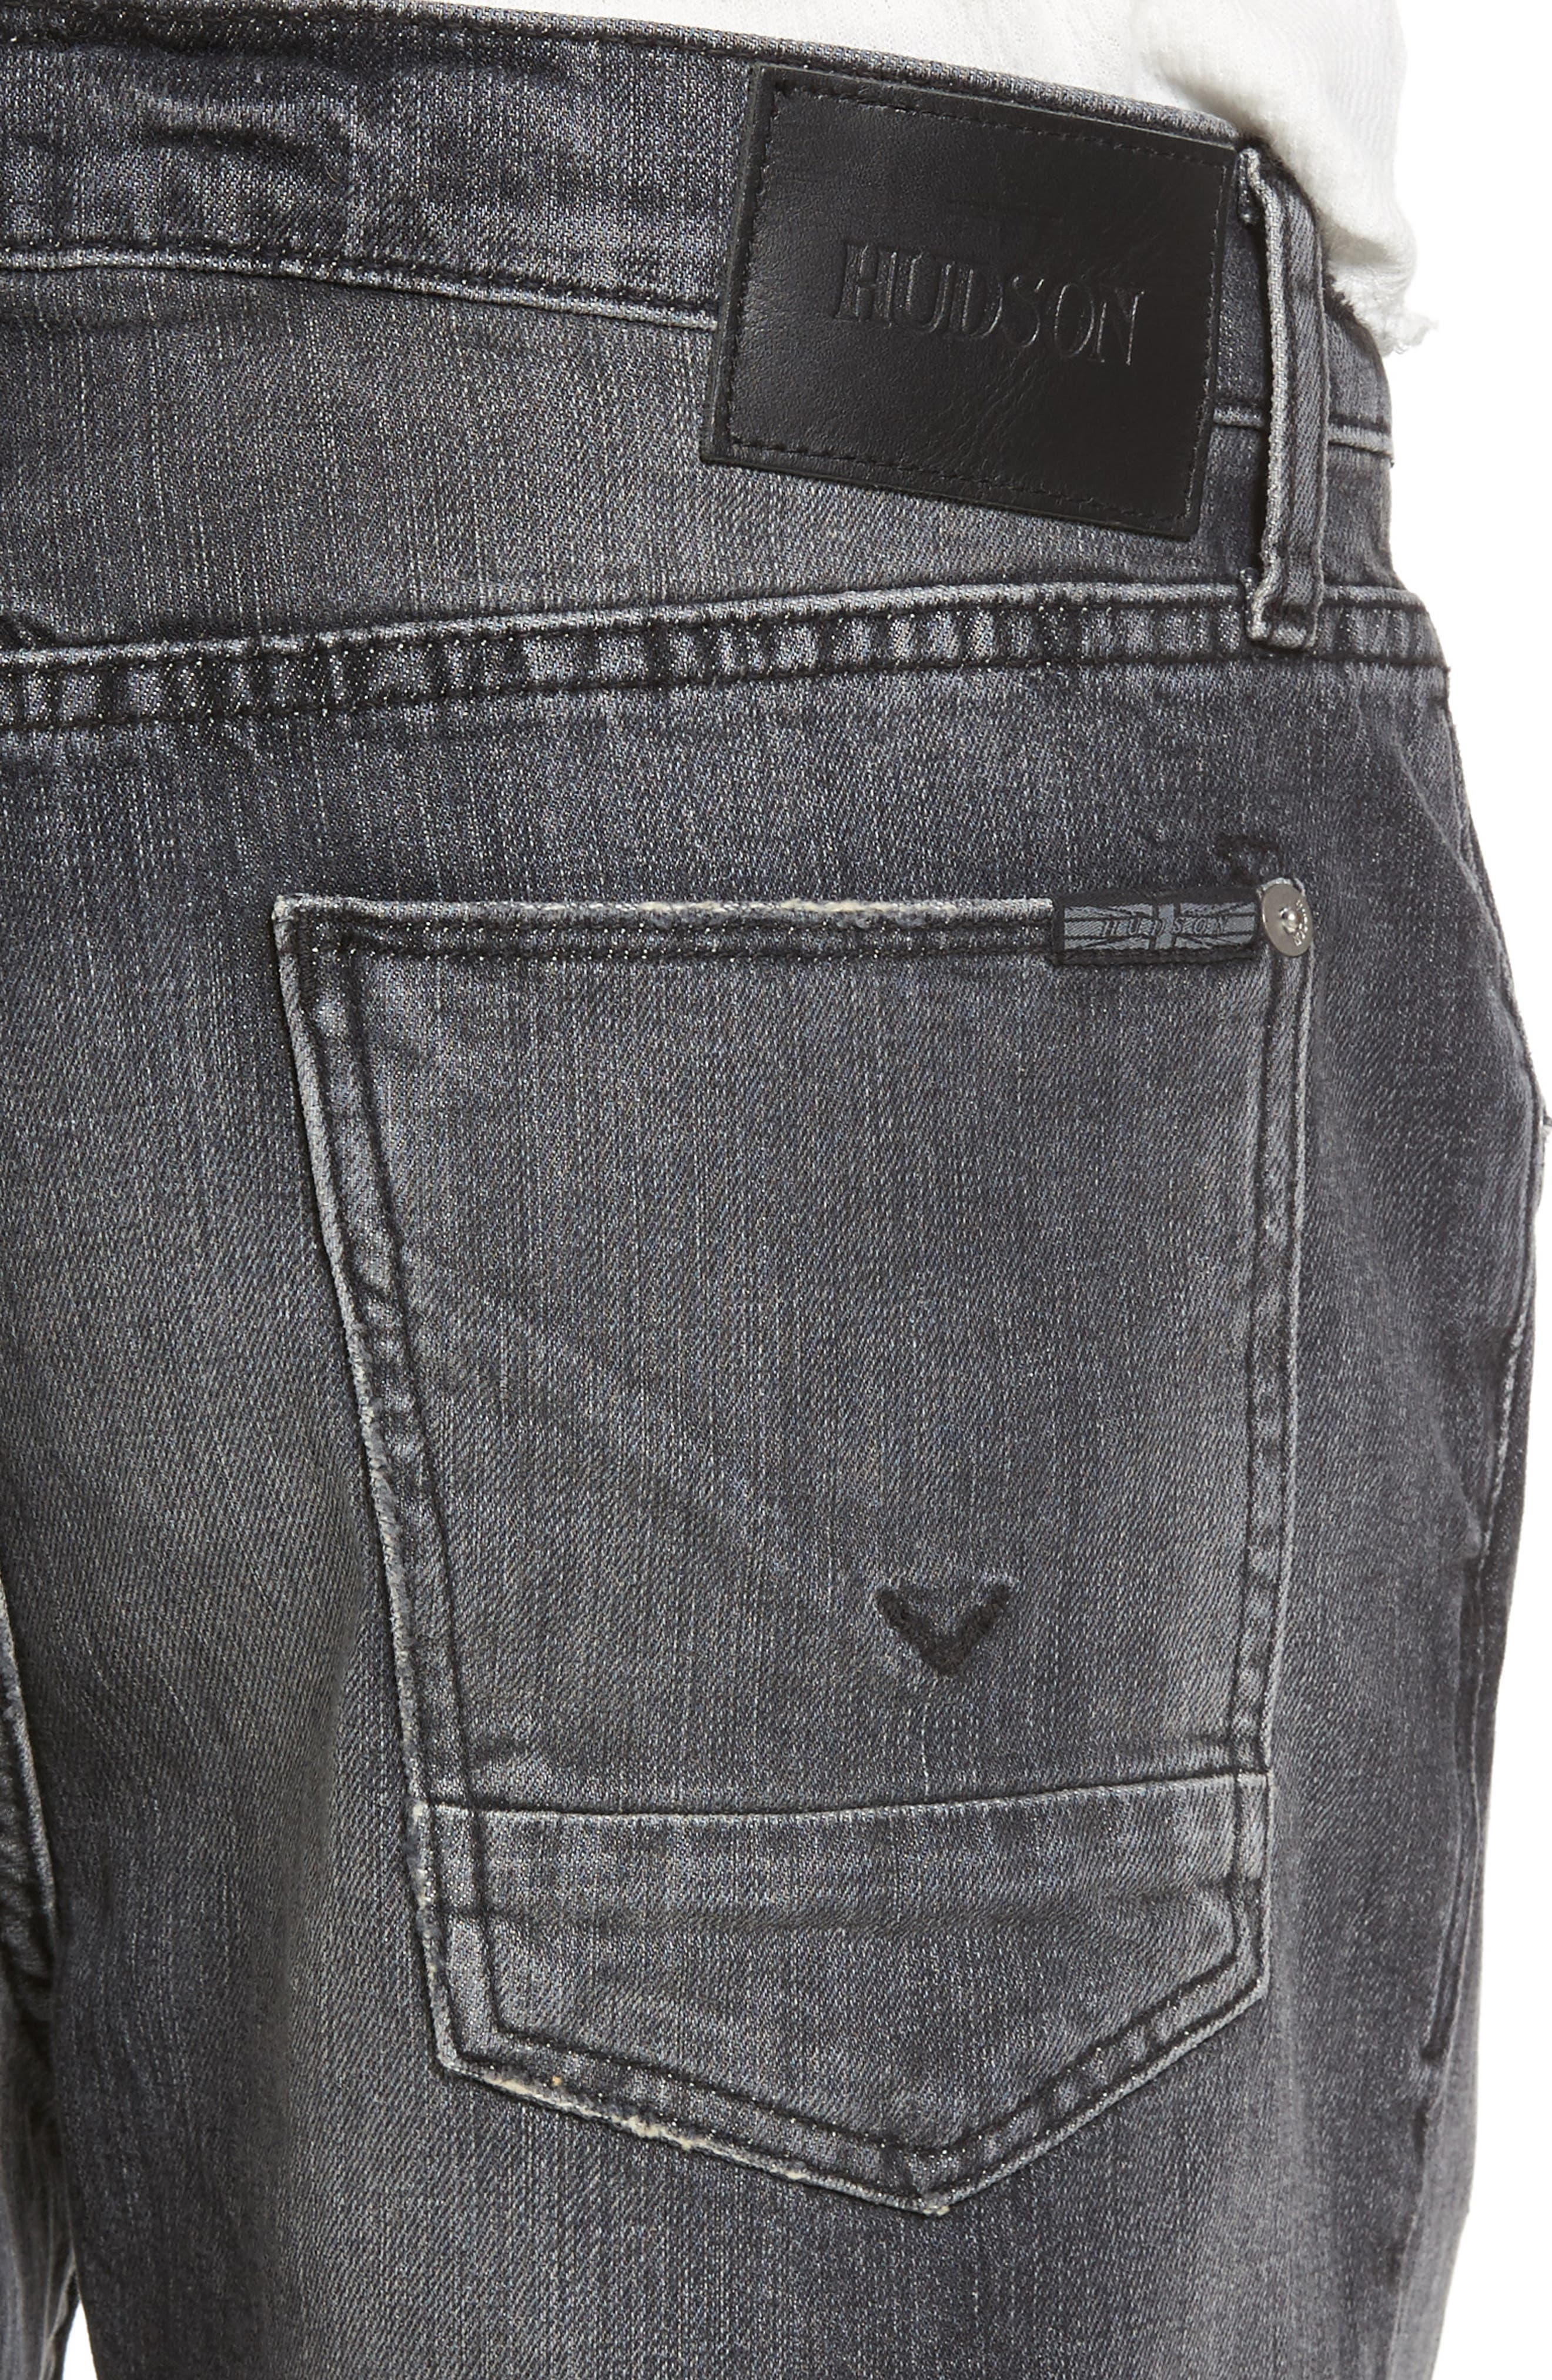 Axl Skinny Fit Jeans,                             Alternate thumbnail 4, color,                             001